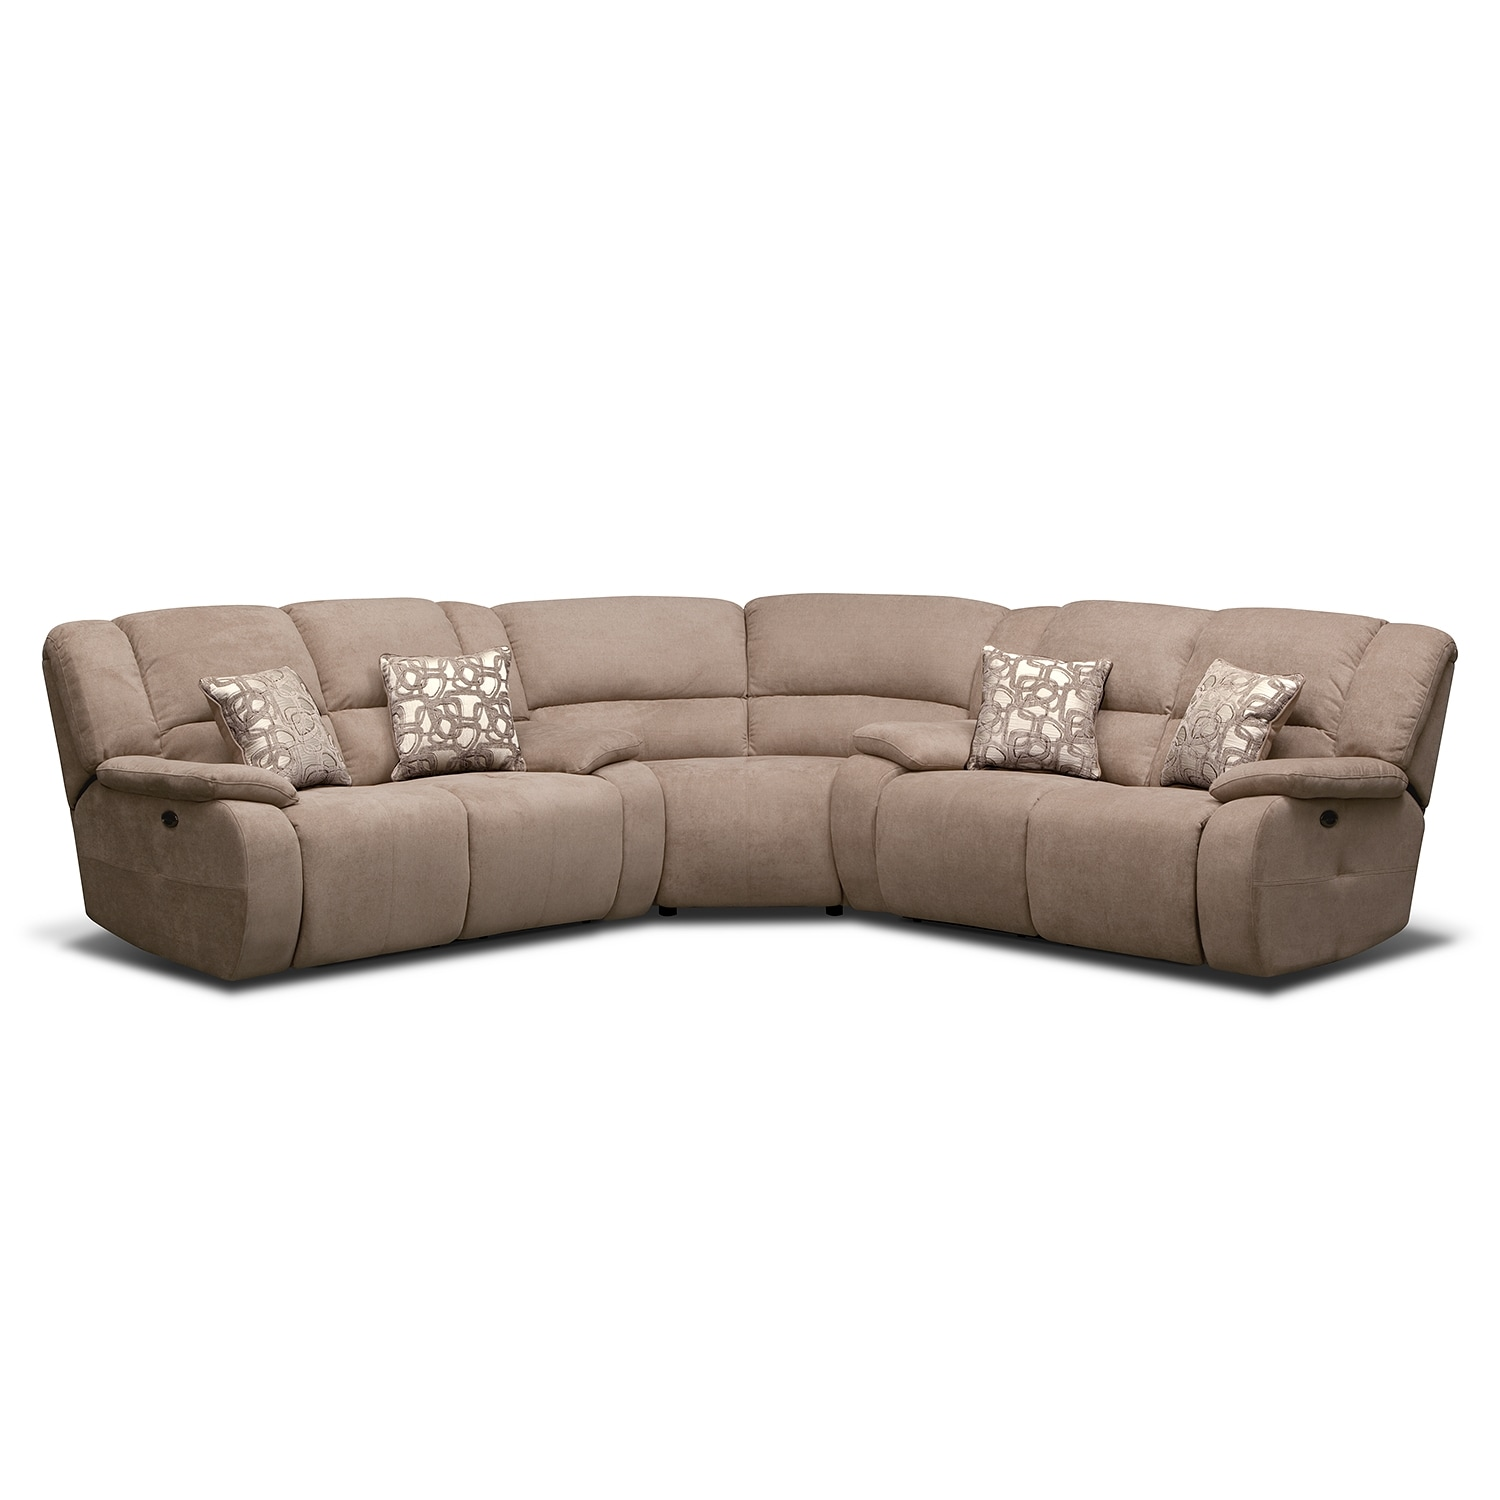 Fortuna ii beige 3 pc power reclining sectional for 3 pc sectional sofa with recliners